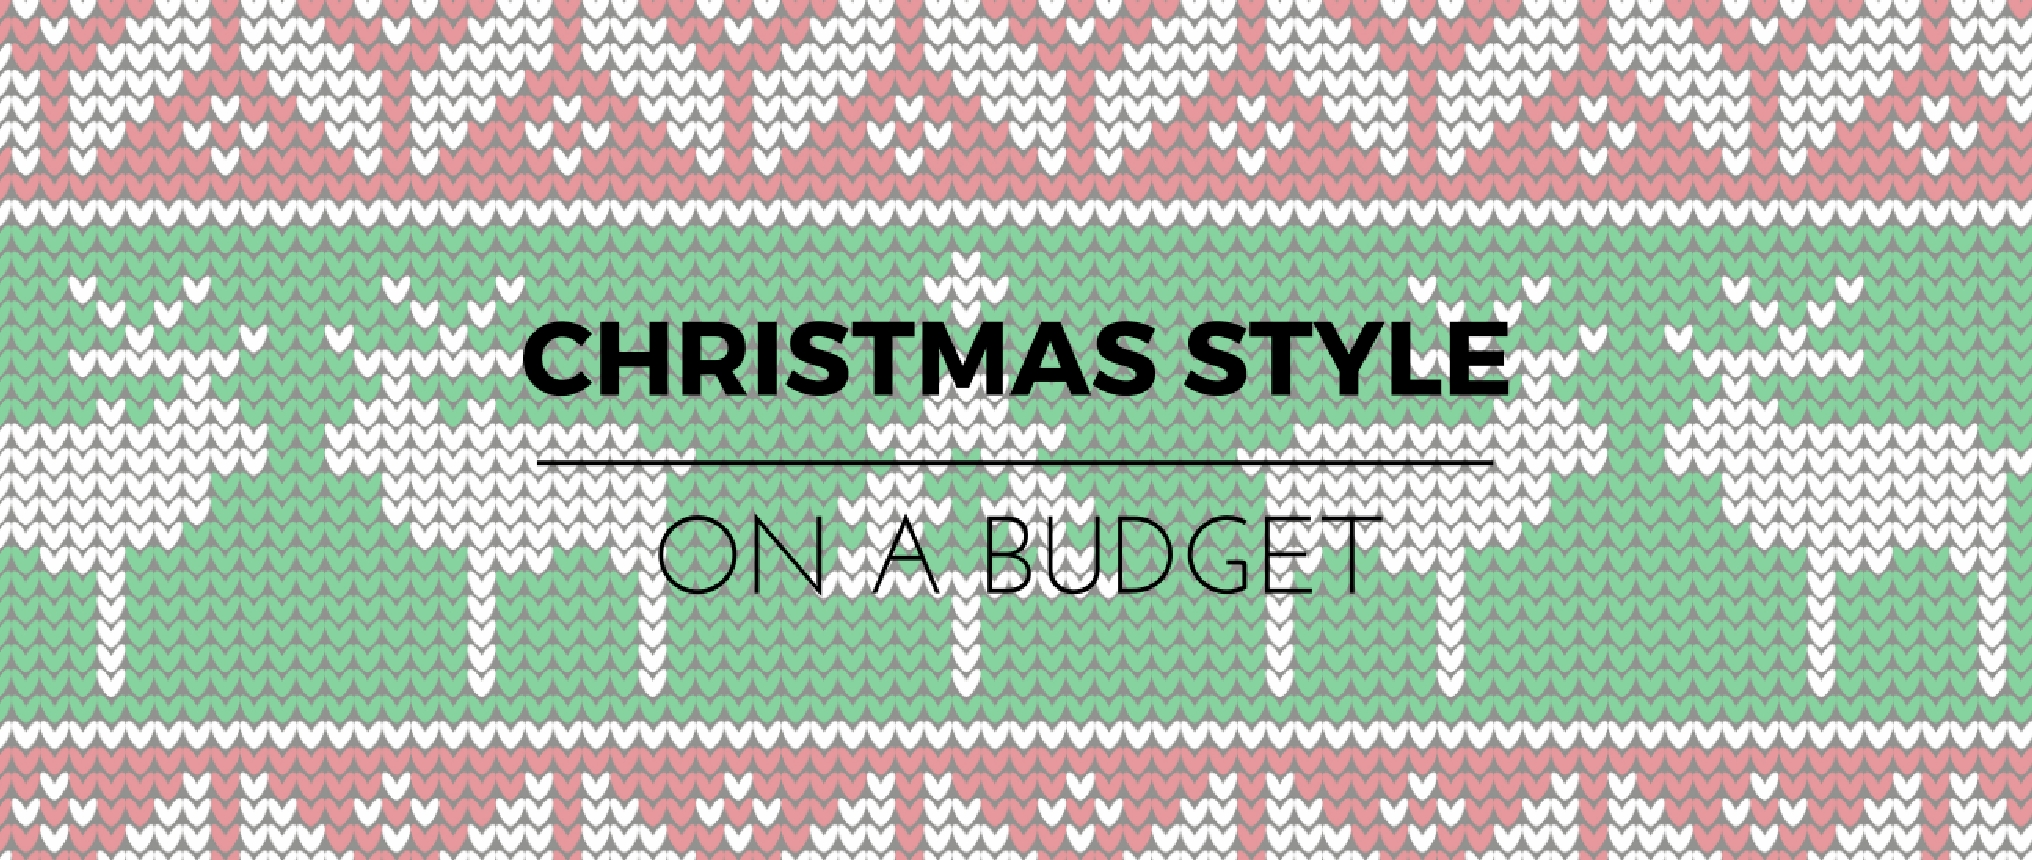 Christmas Style on a Budget